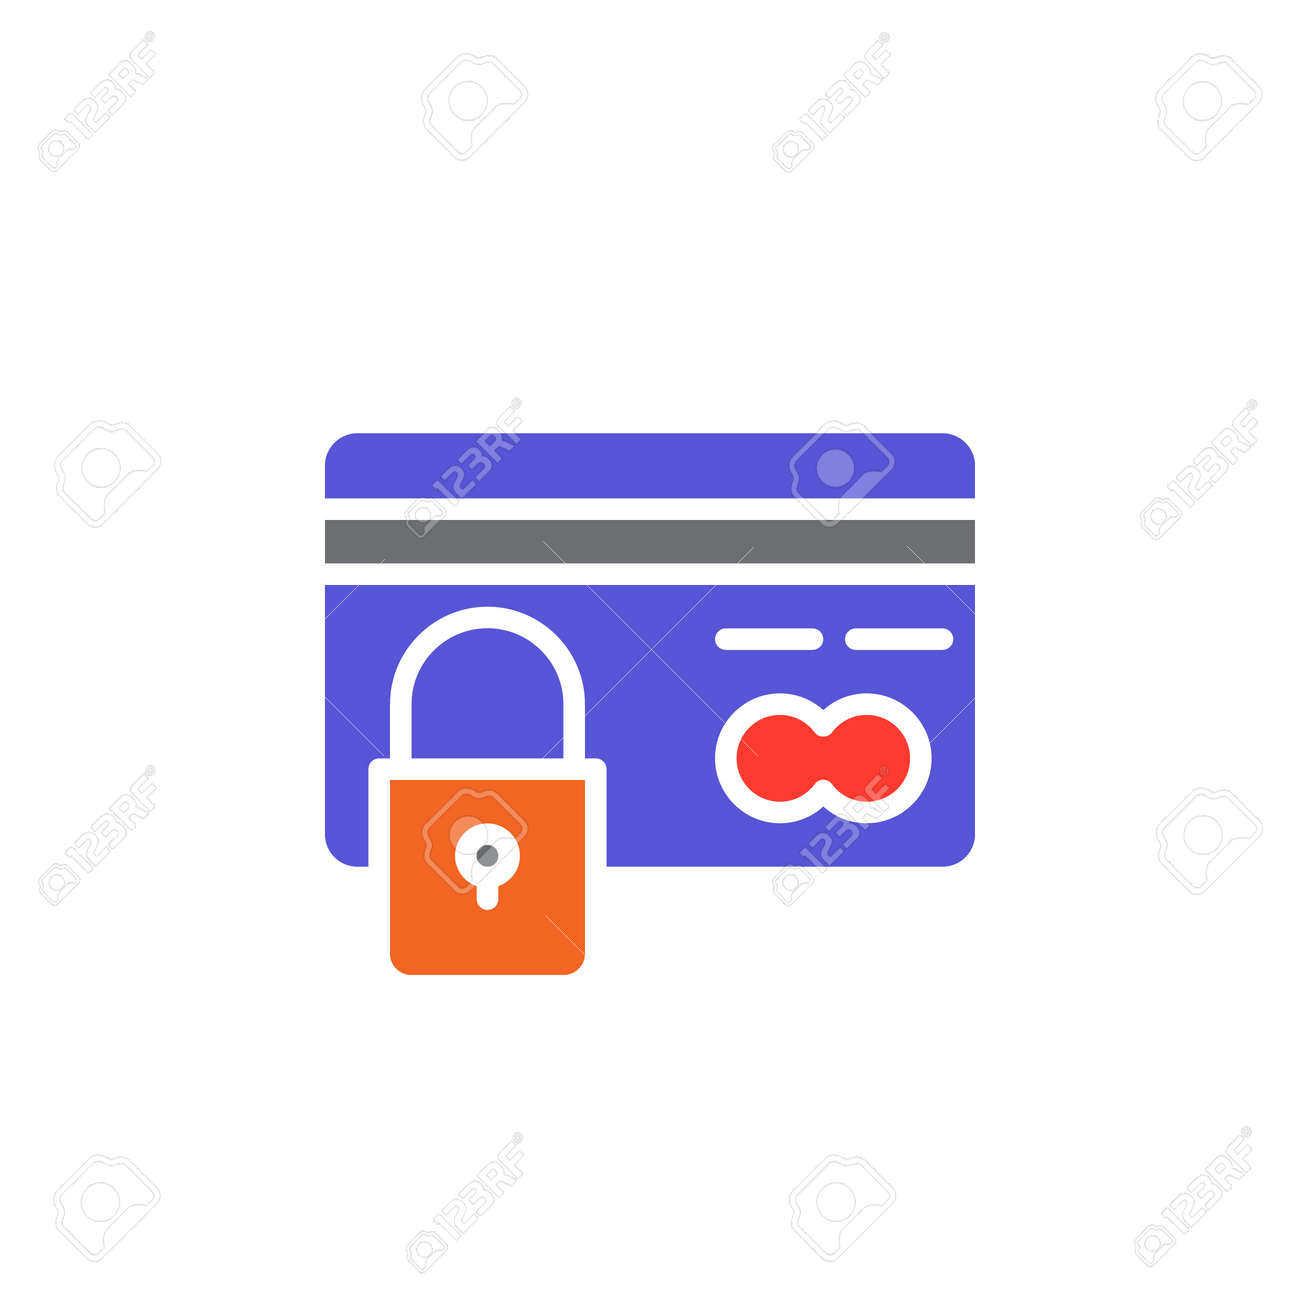 credit card with lock icon vector filled flat sign solid colorful rh 123rf com jcb credit card vector logo major credit card logos vector